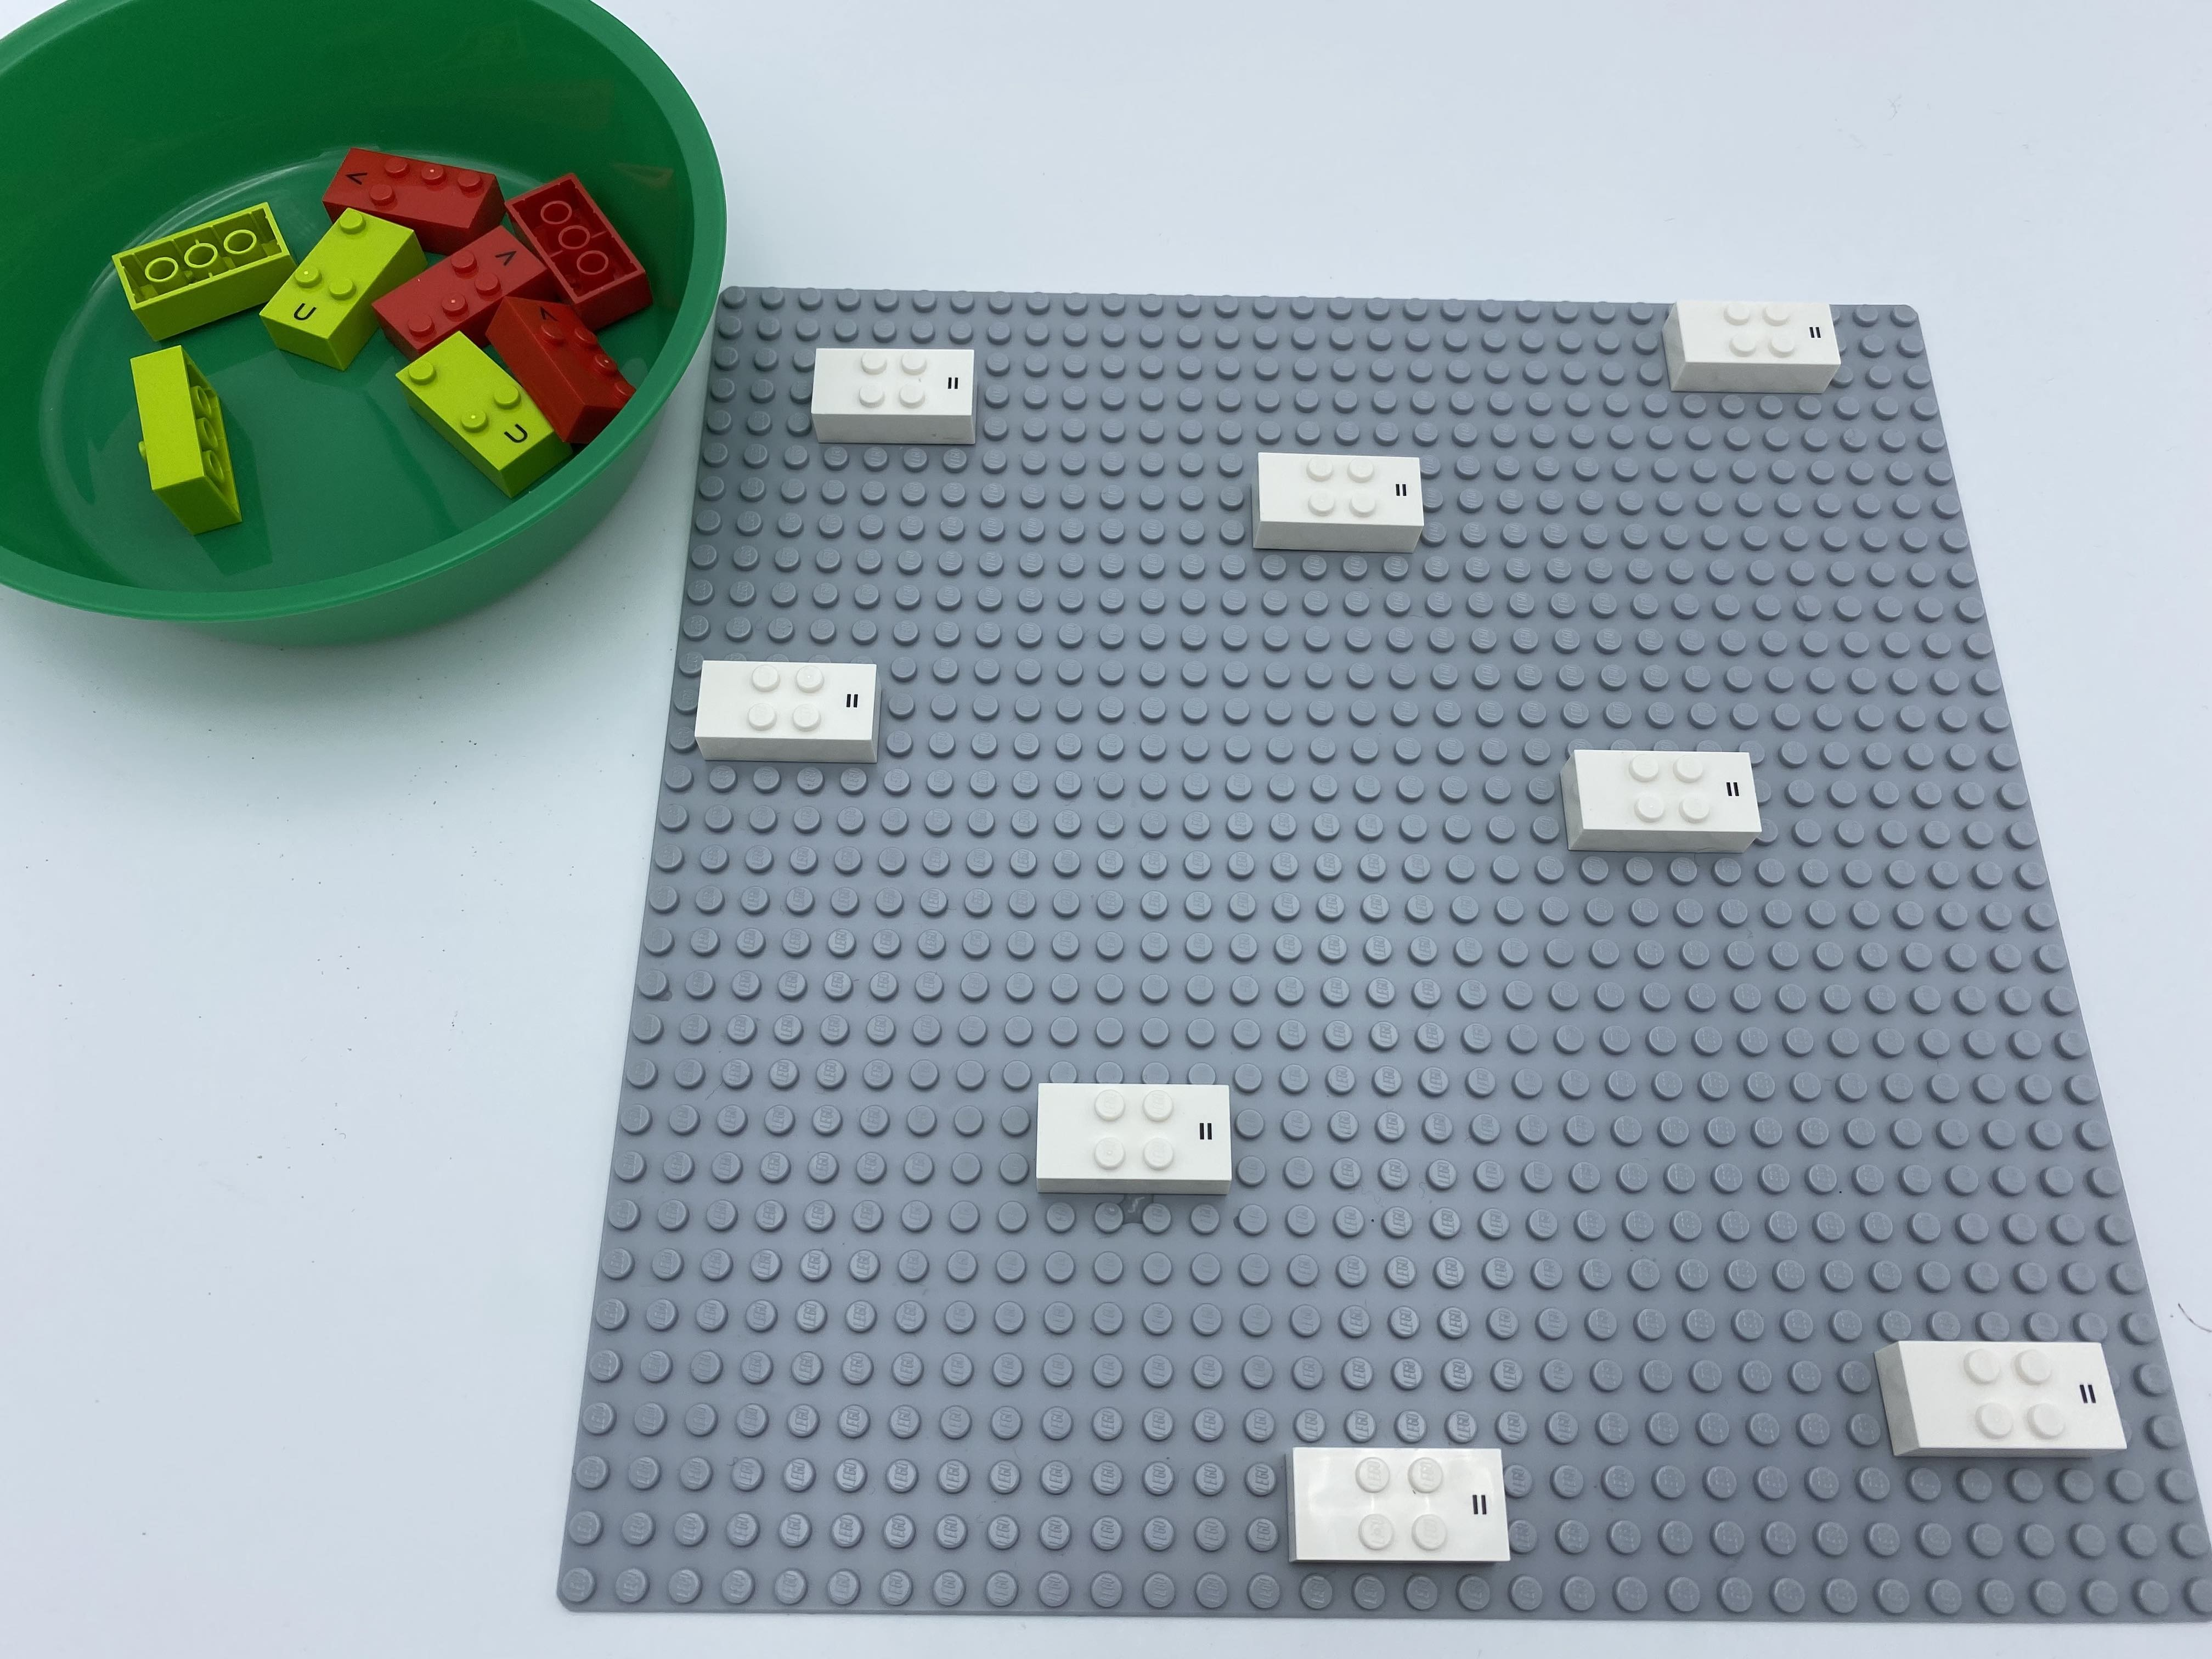 8 equal sign bricks are attached horizontally all over a plate